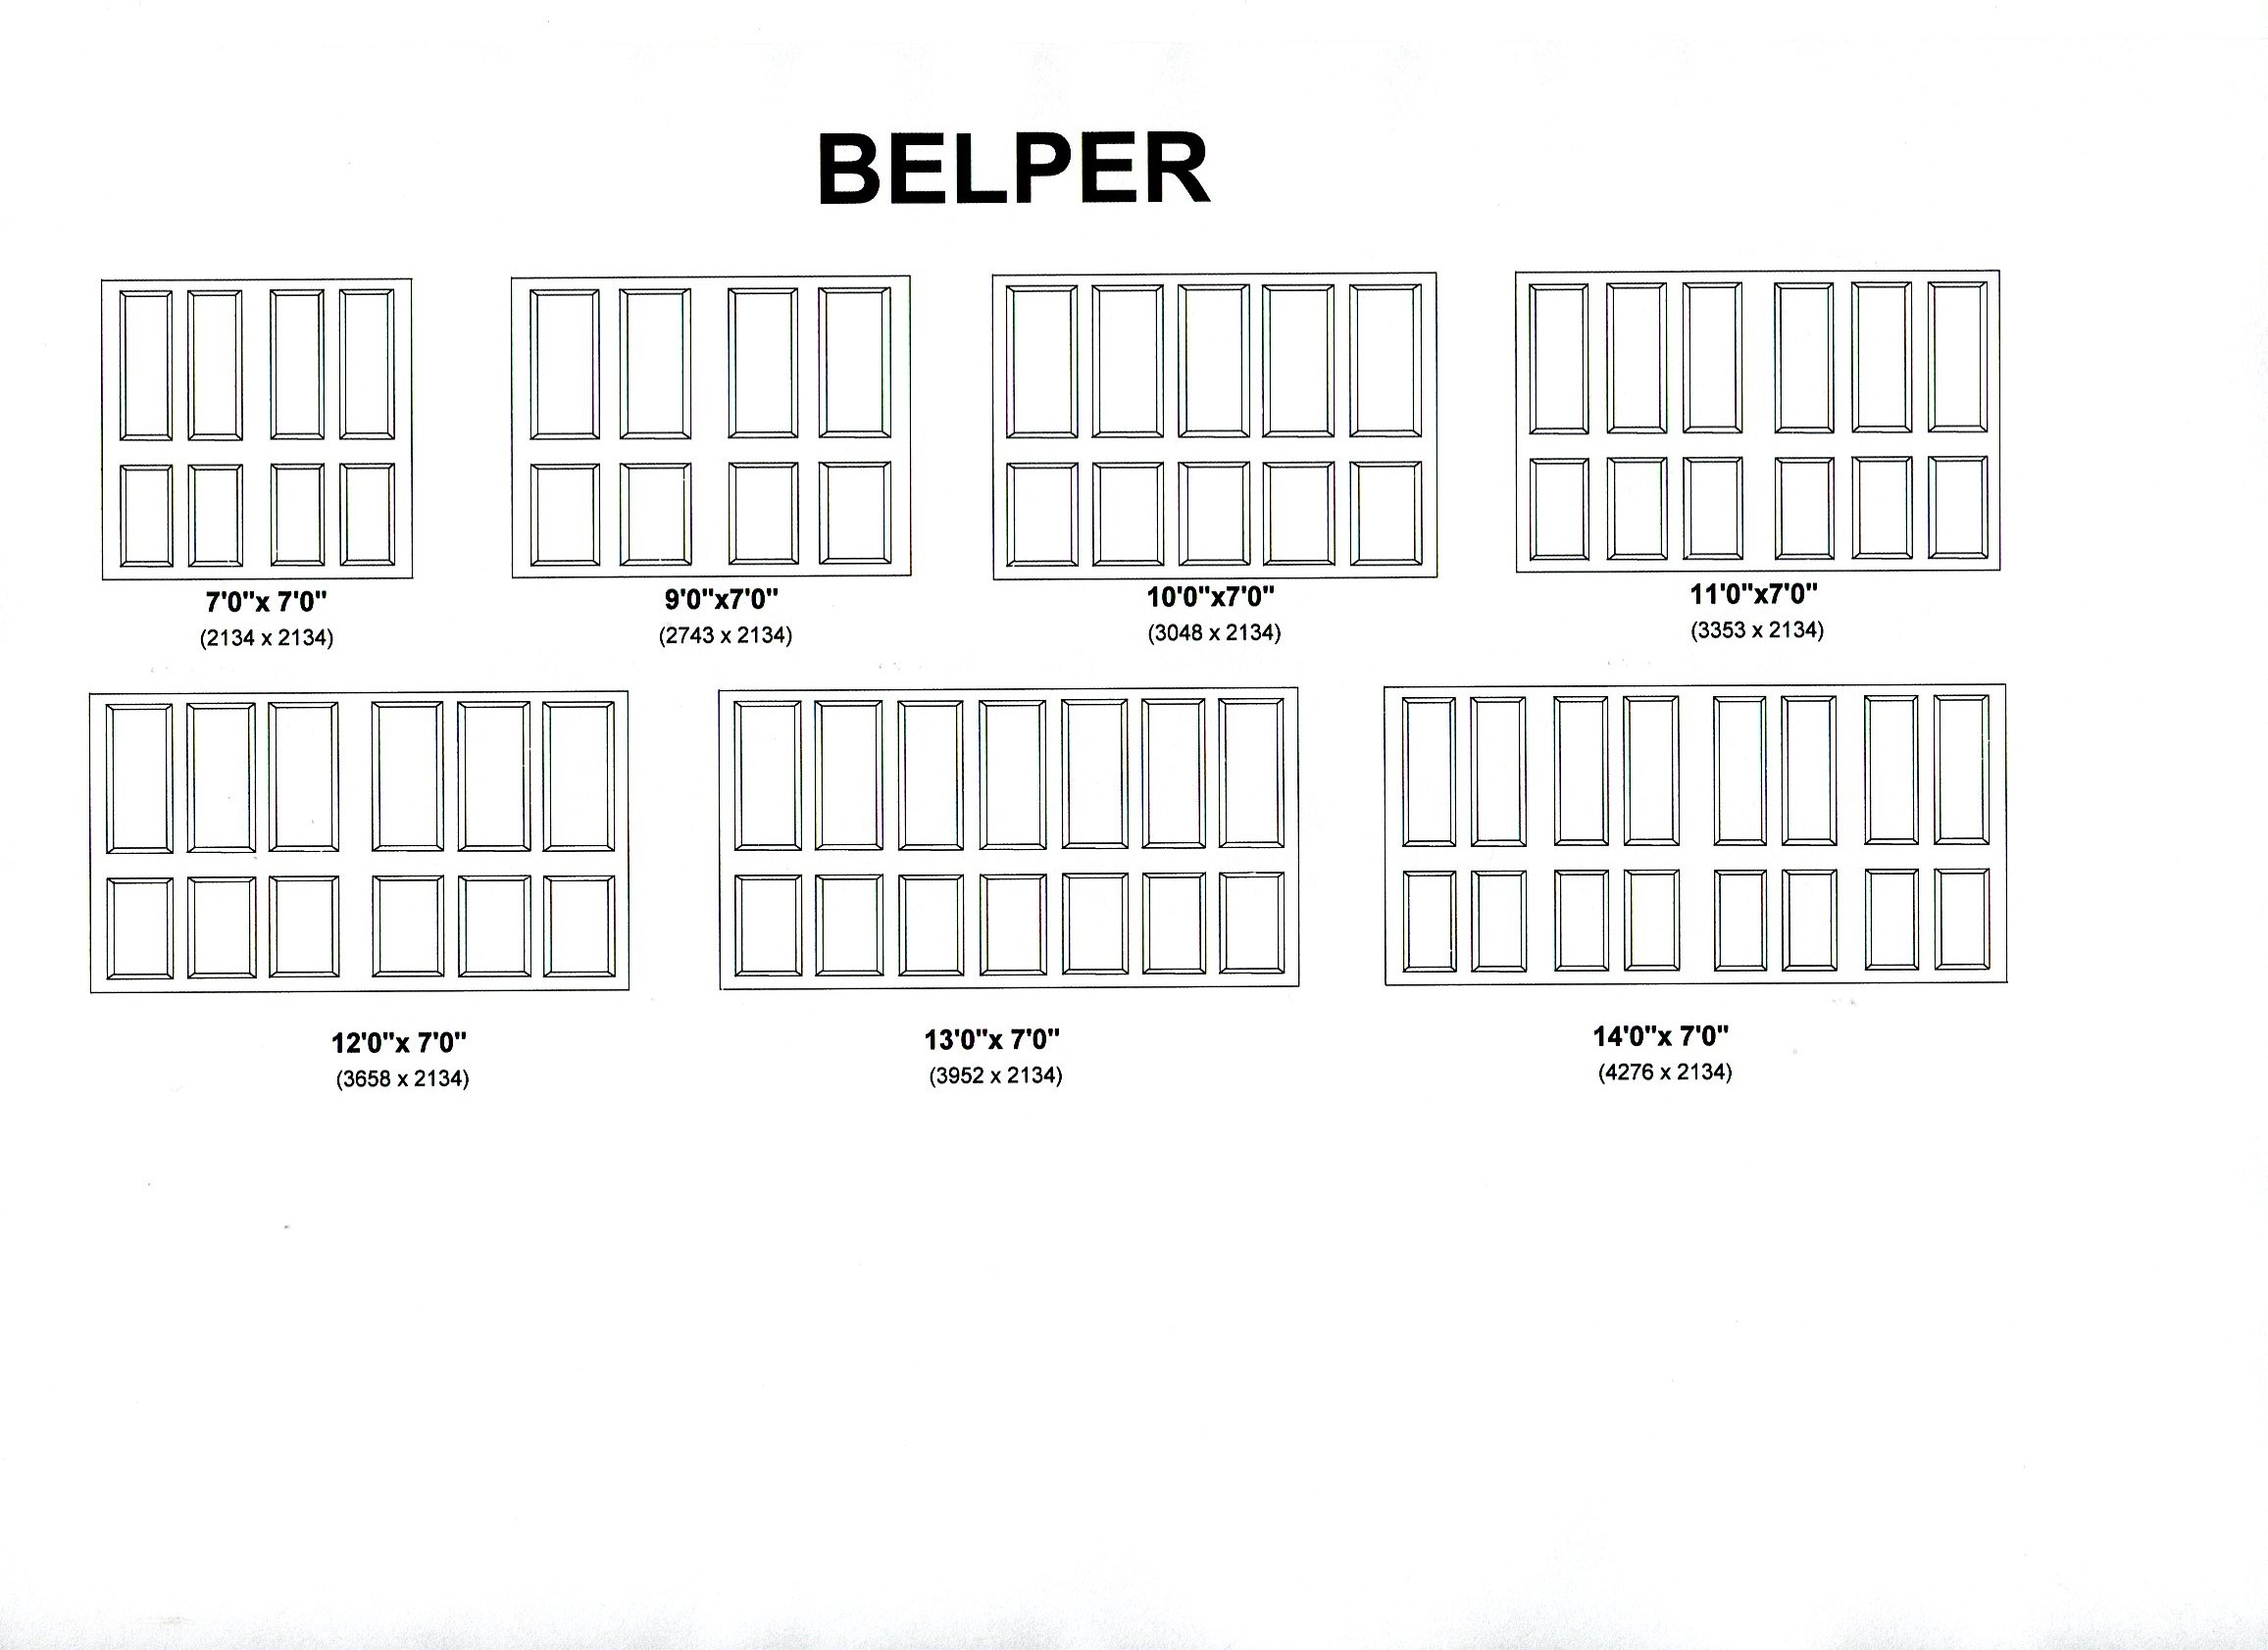 Cedar Door Belper design options